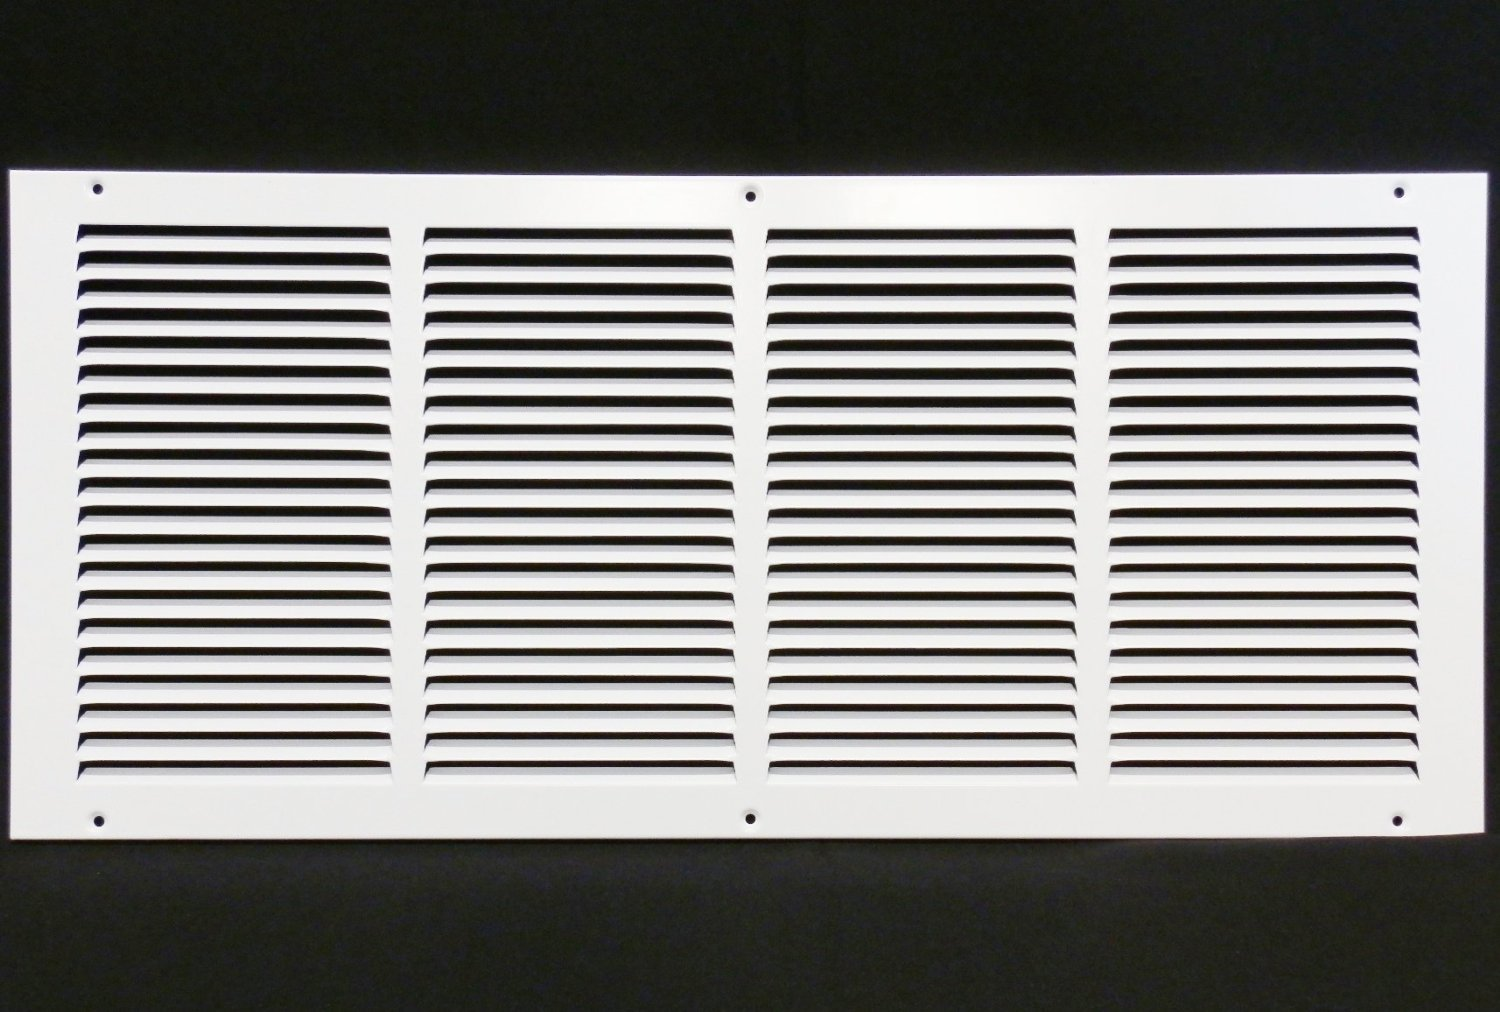 24''w X 10''h Steel Return Air Grilles - Sidewall and Cieling - HVAC DUCT COVER - White [Outer Dimensions: 25.75''w X 11.75''h]